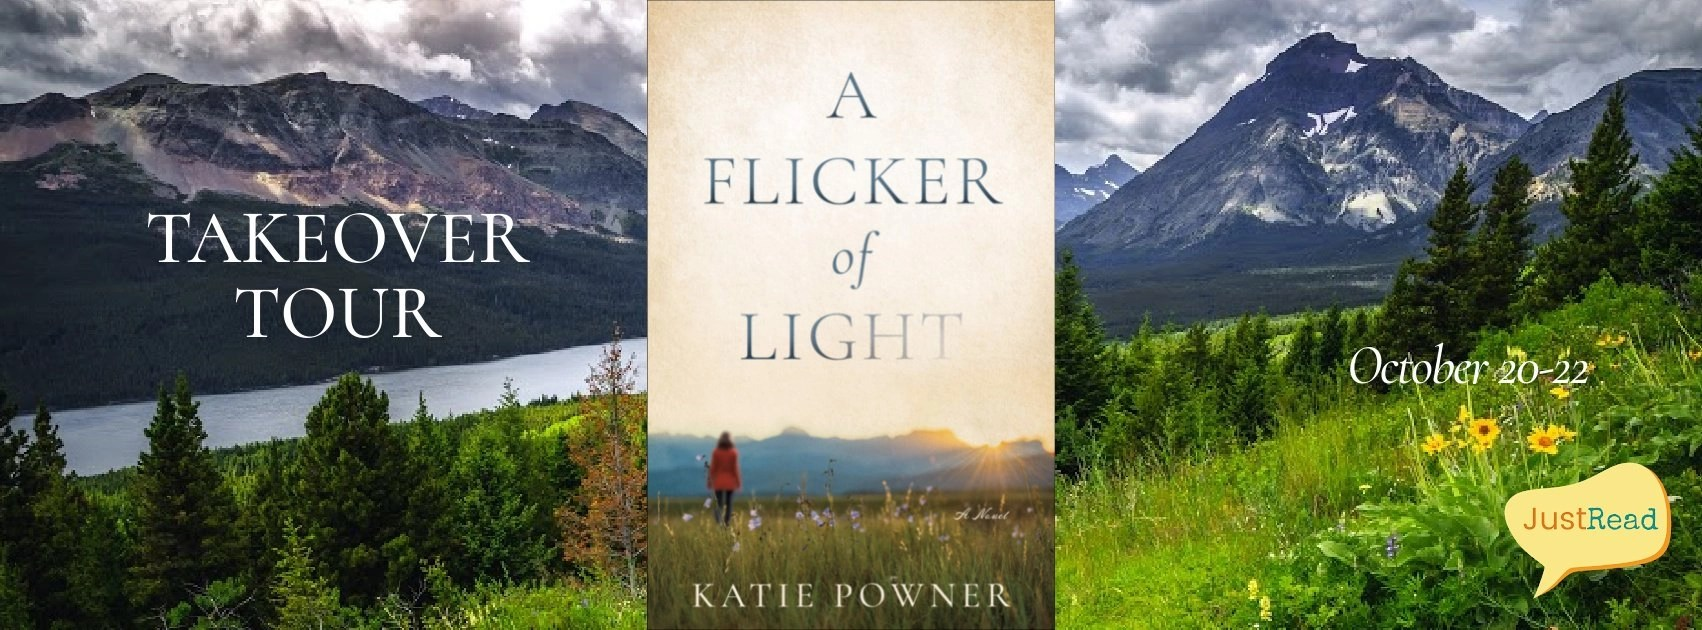 Welcome to A Flicker of Light Takeover Tour & Giveaway!